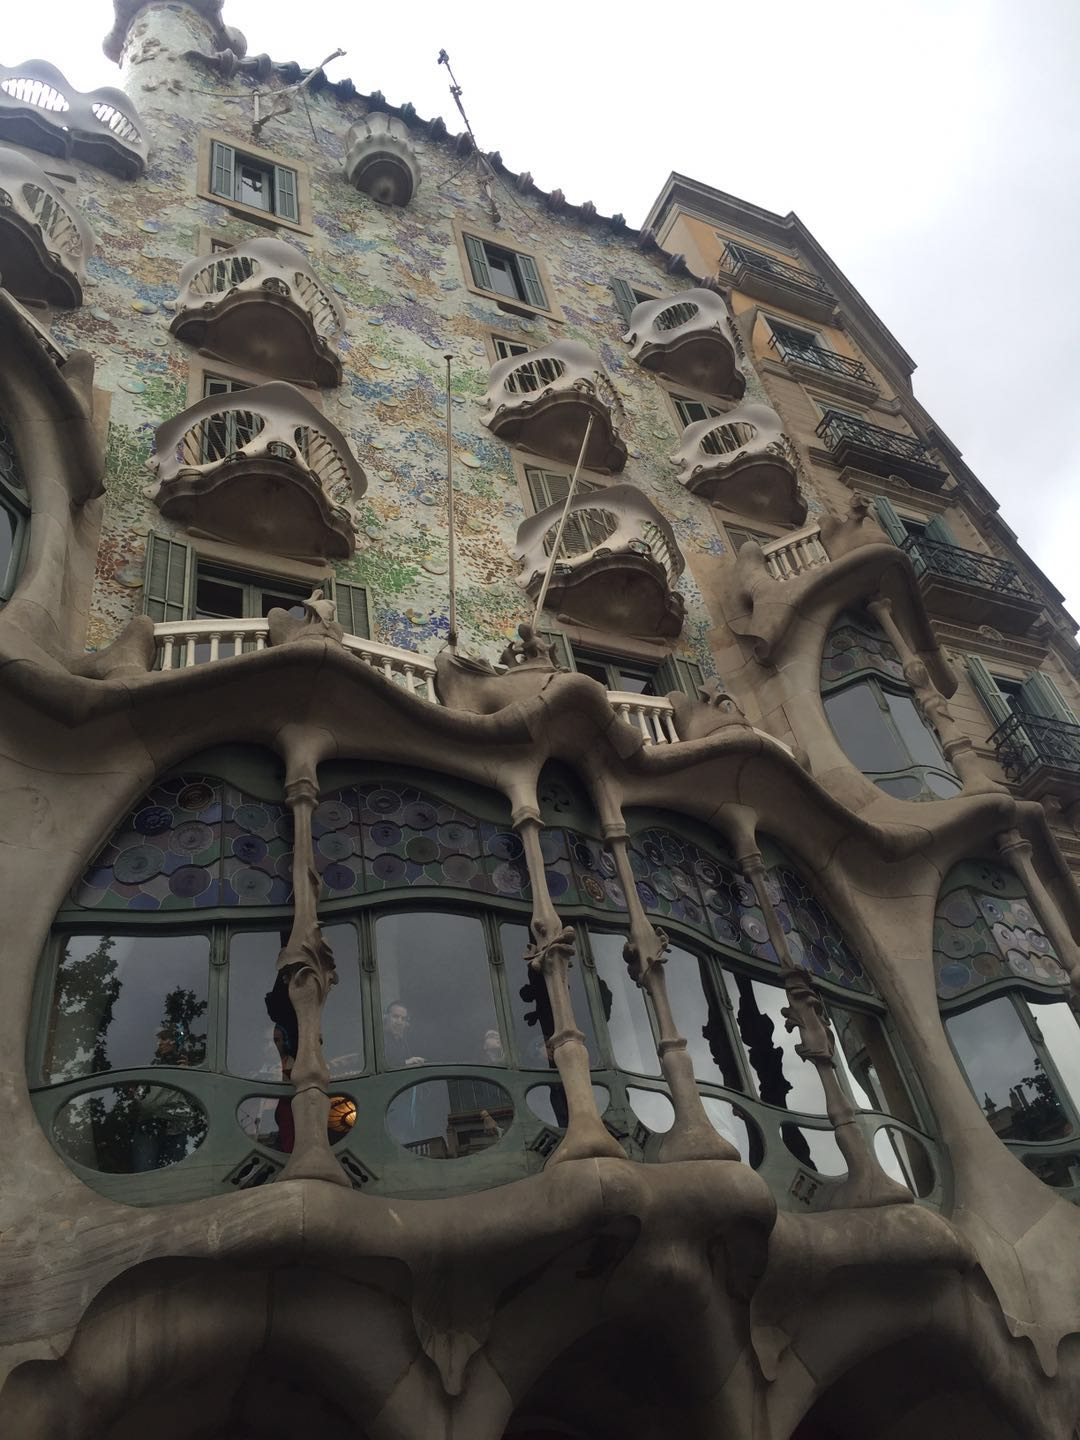 ... My Friend And I Visited The Casa Batlló, Which Made Think That Gaudi  Just Had The Talent To Carry The Castle In Fairy Tales Into The Real Life. Great Ideas